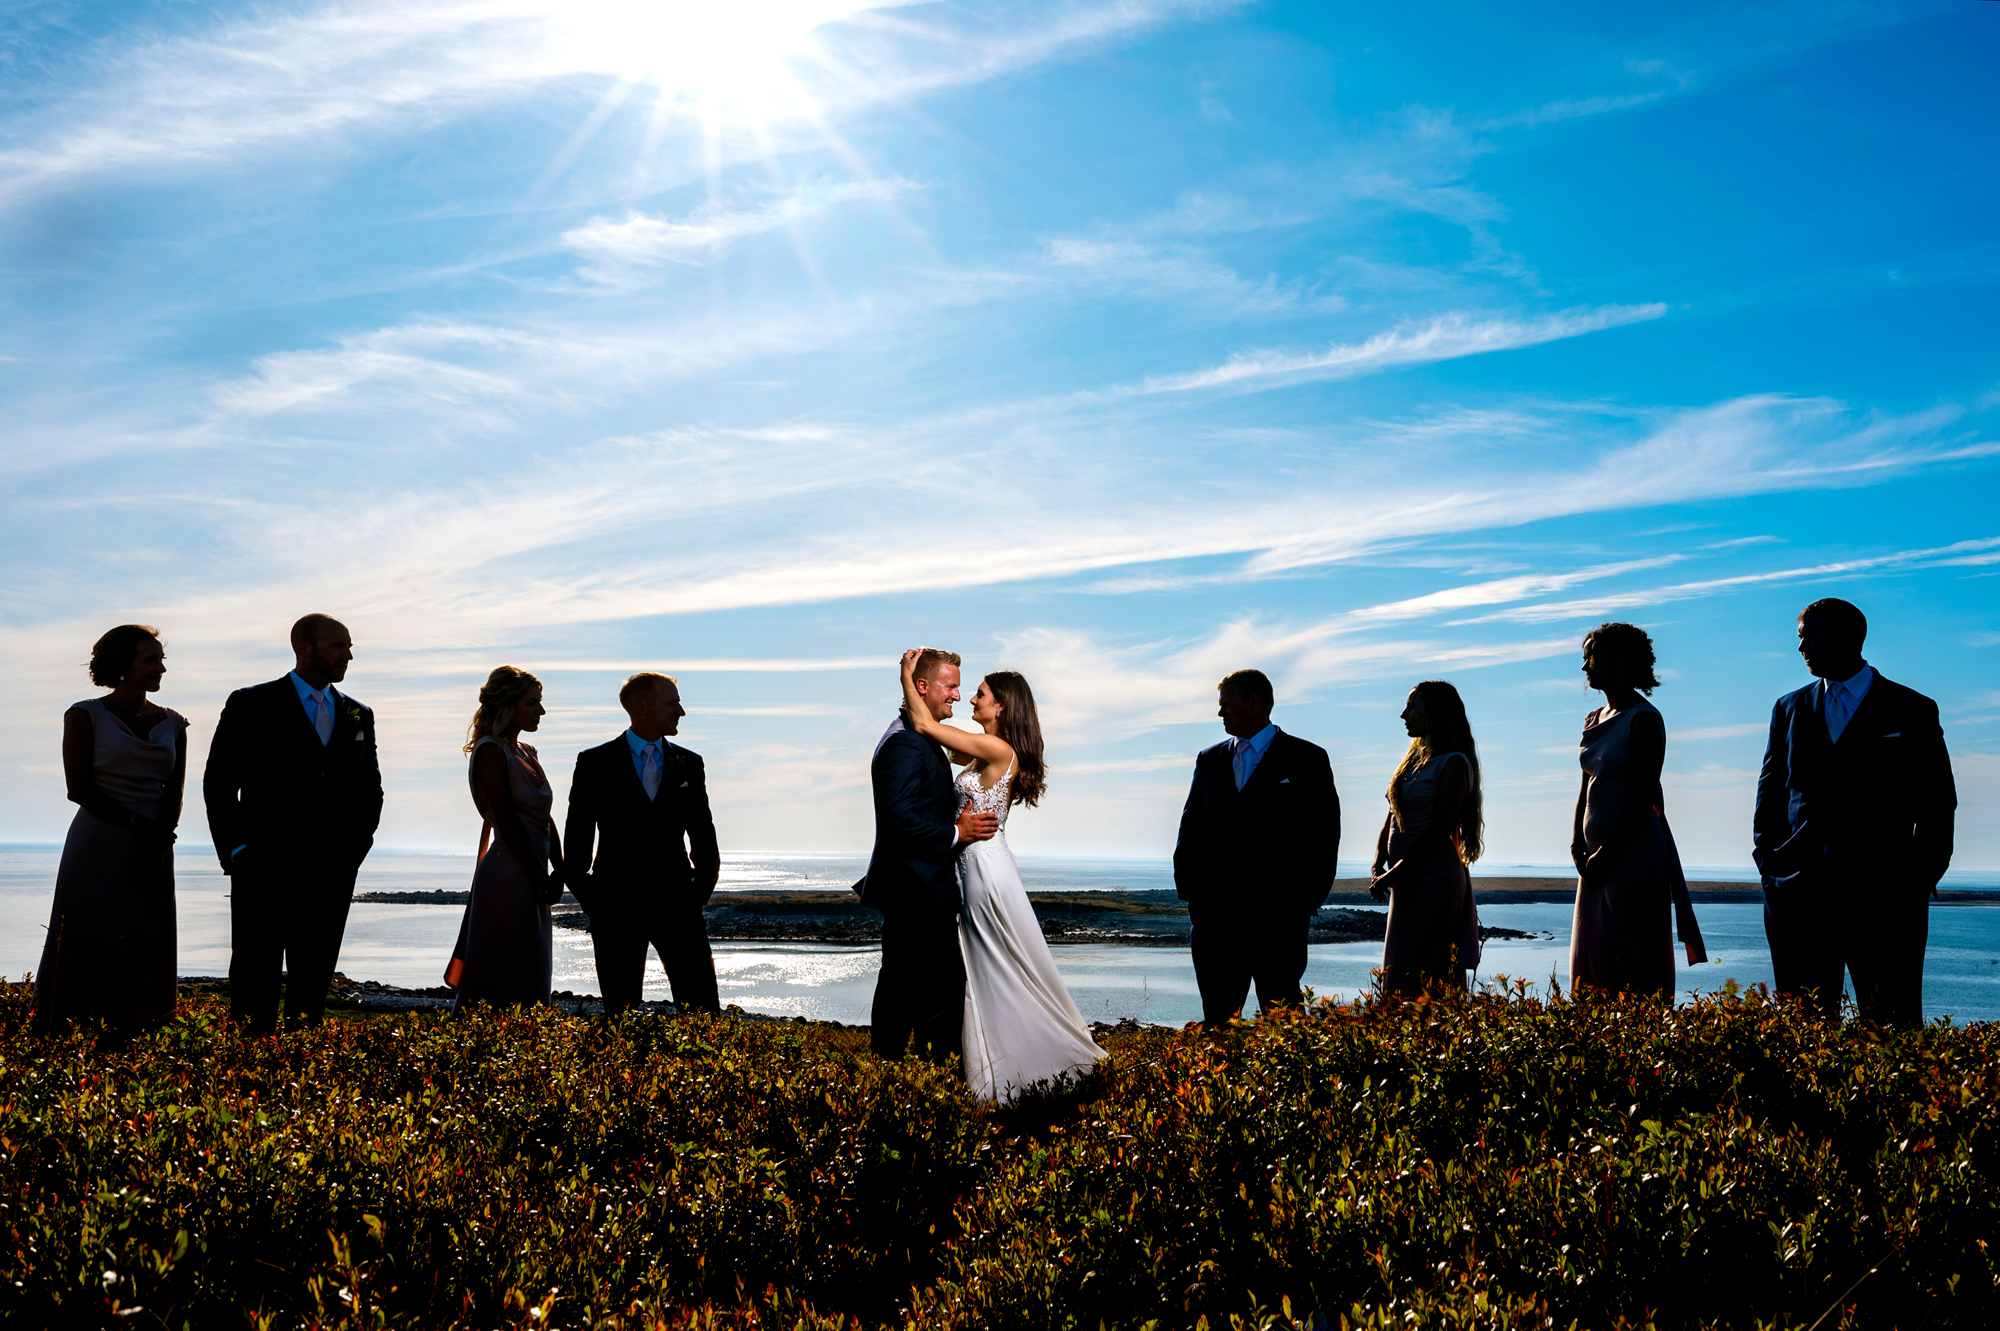 Waterfront ceremony - photo by Cooked Photography